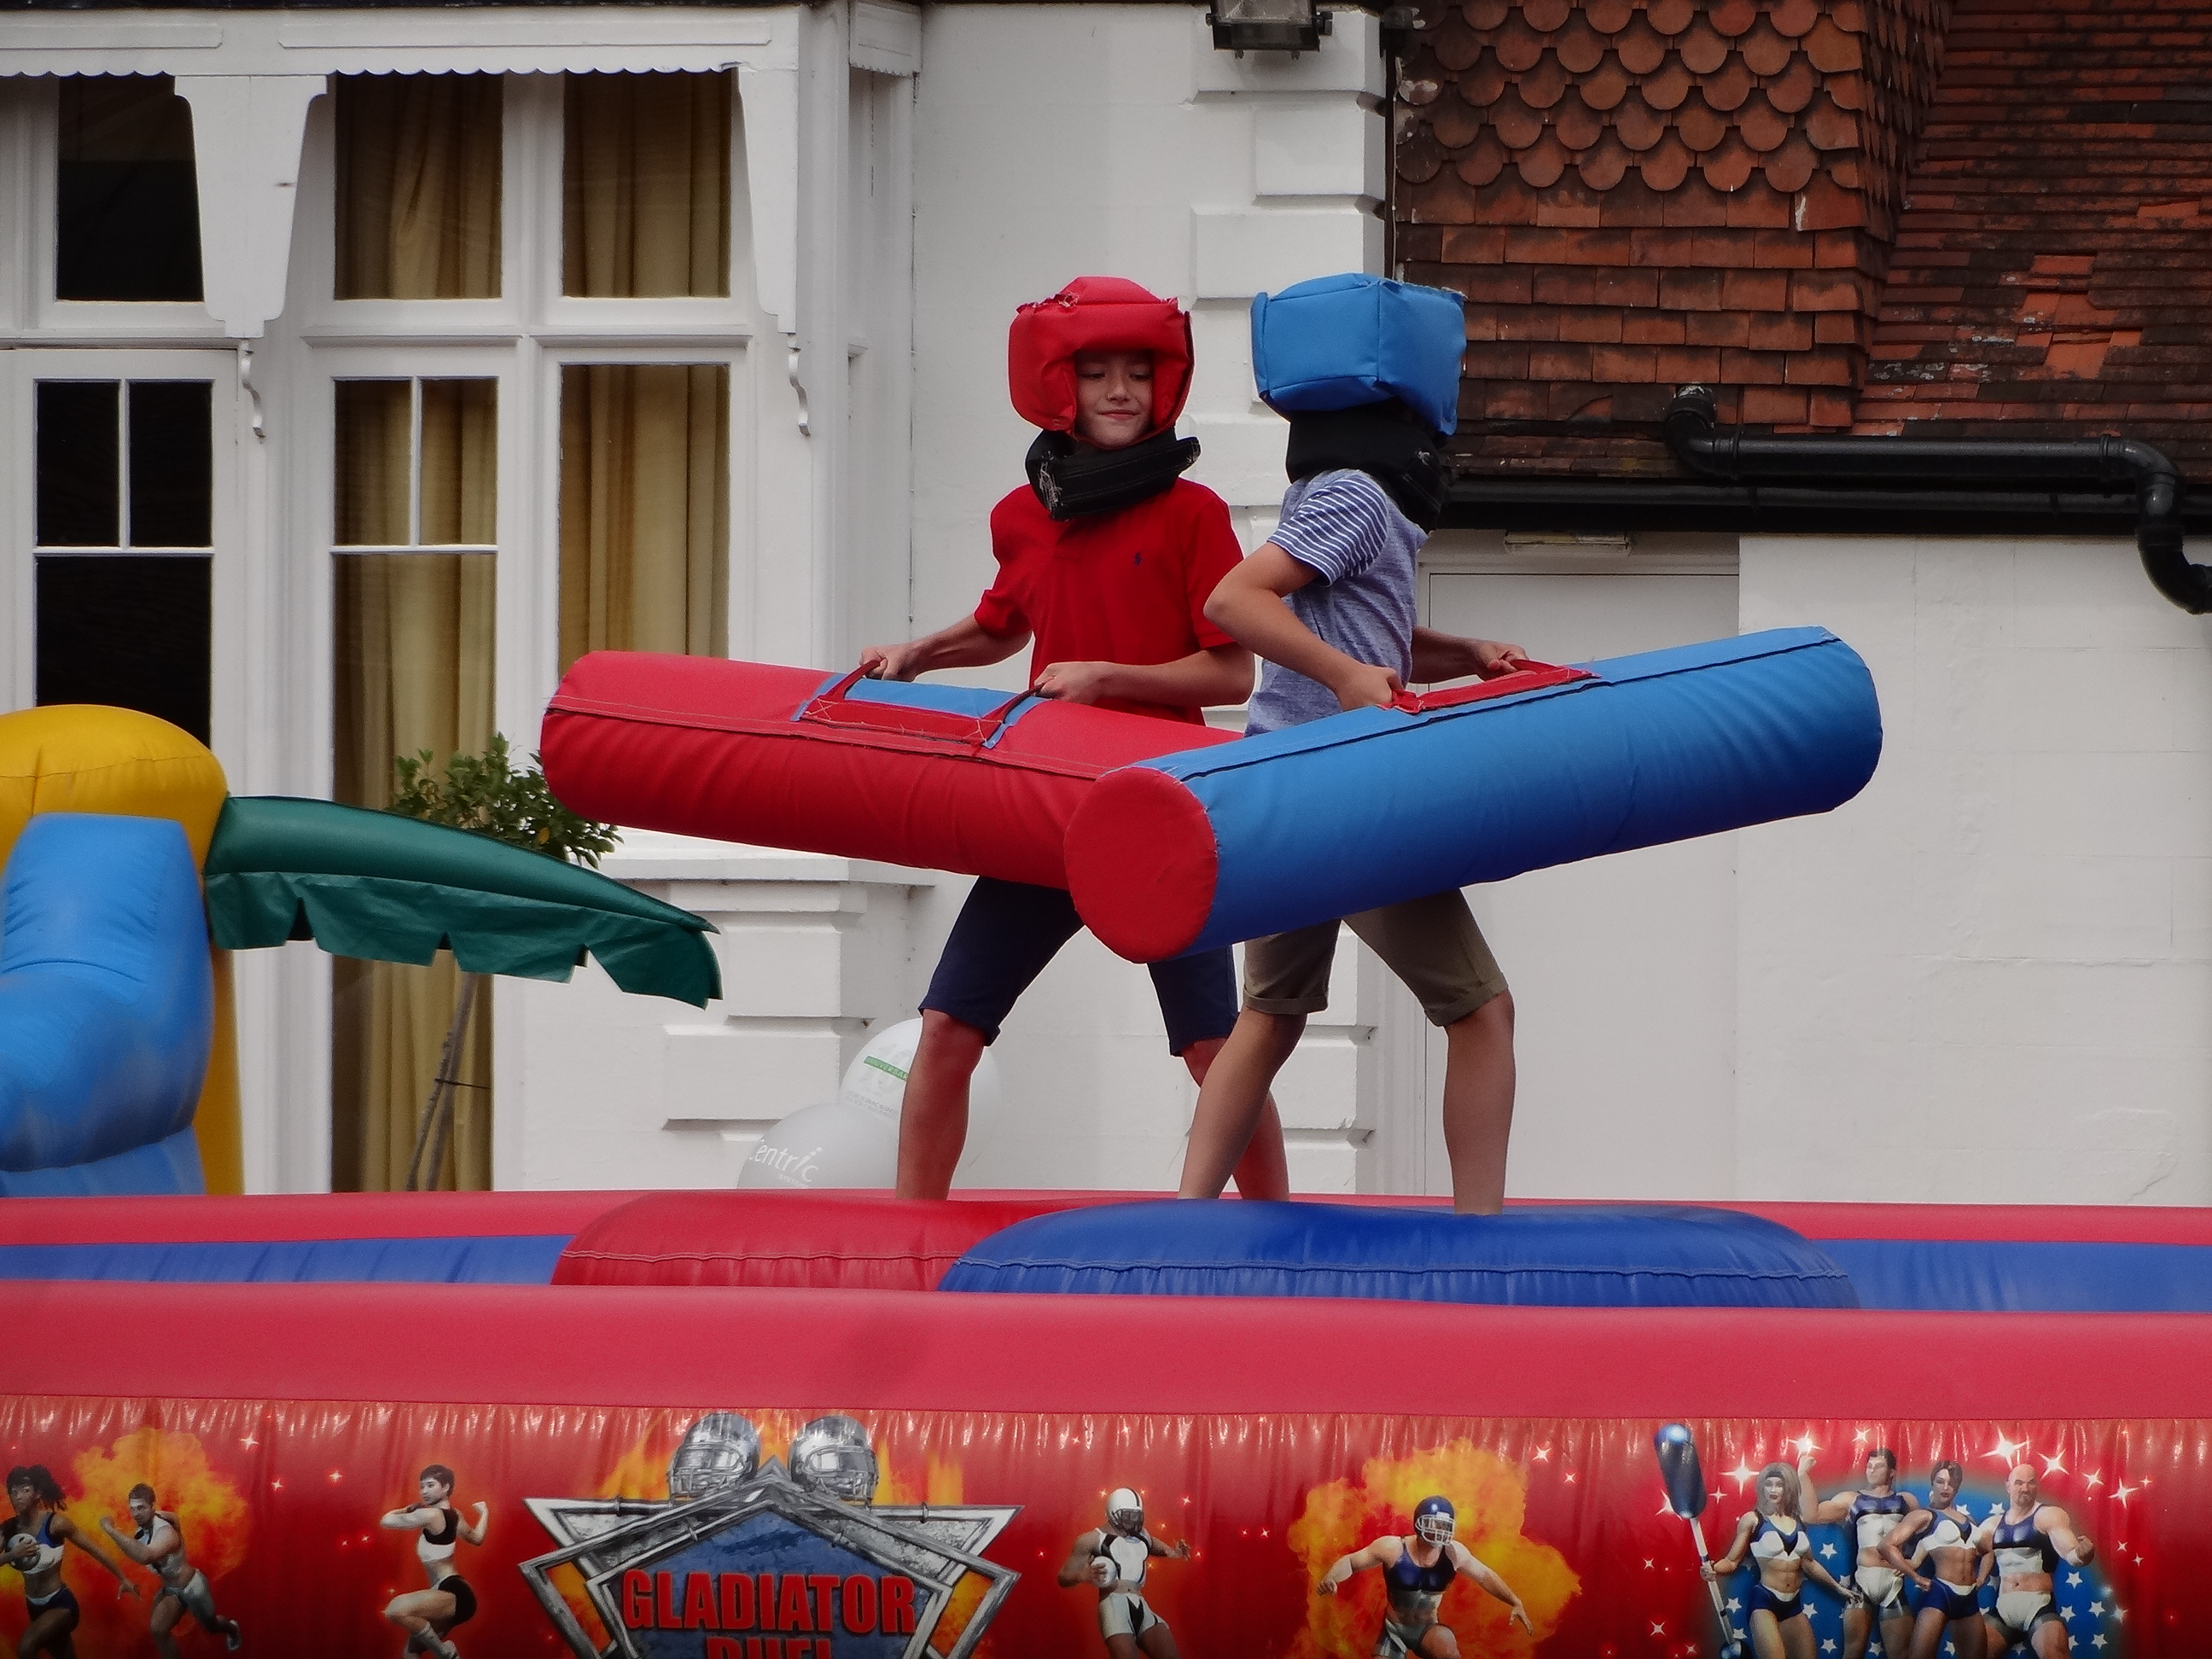 Fun Ideas For Childrens Party London Entertainment Options Kensington